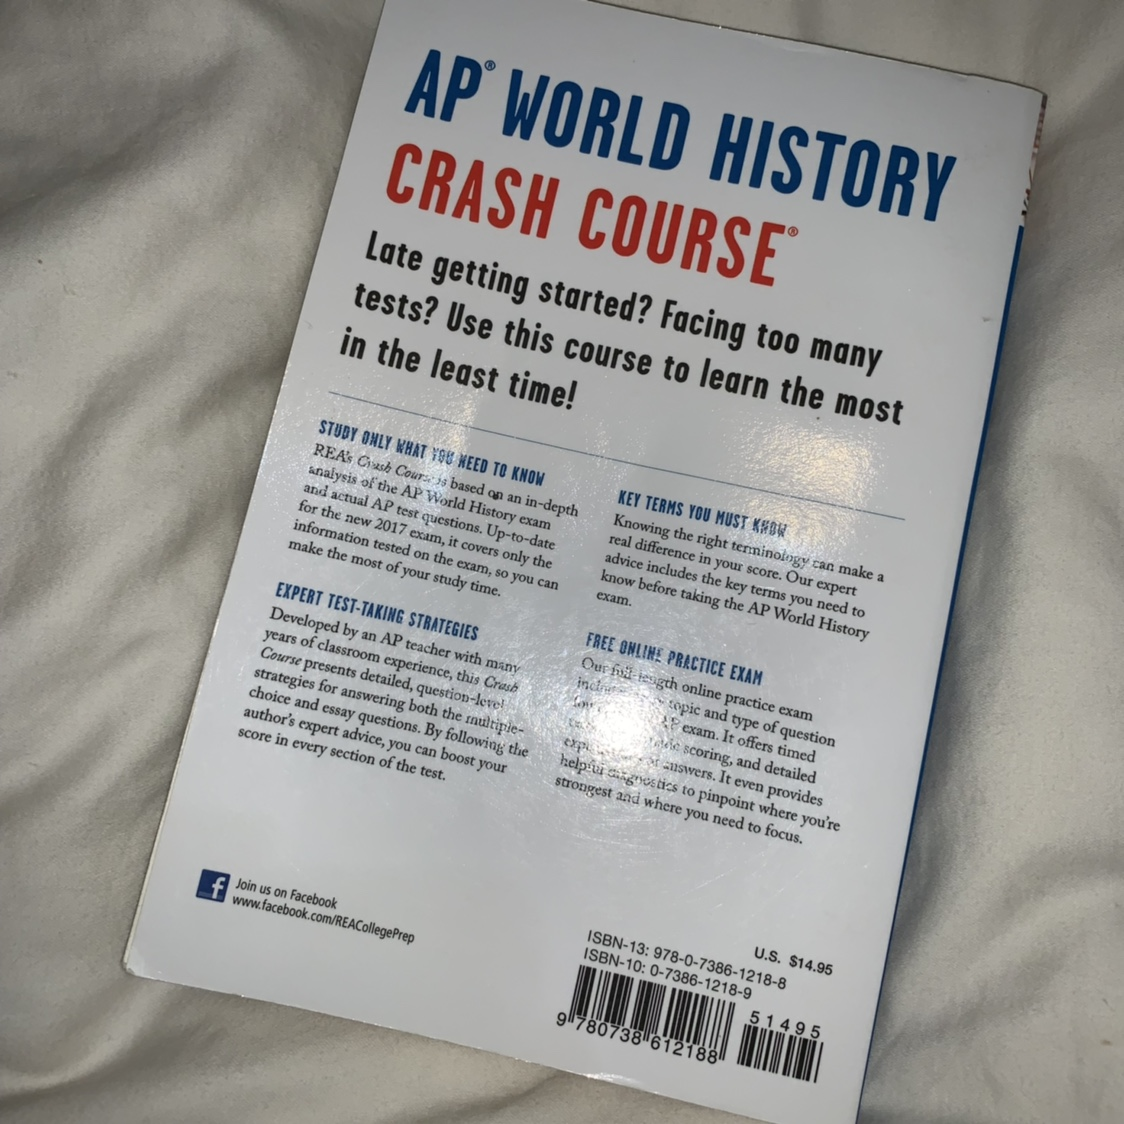 ap world history crash course book for the ap exams    - Depop